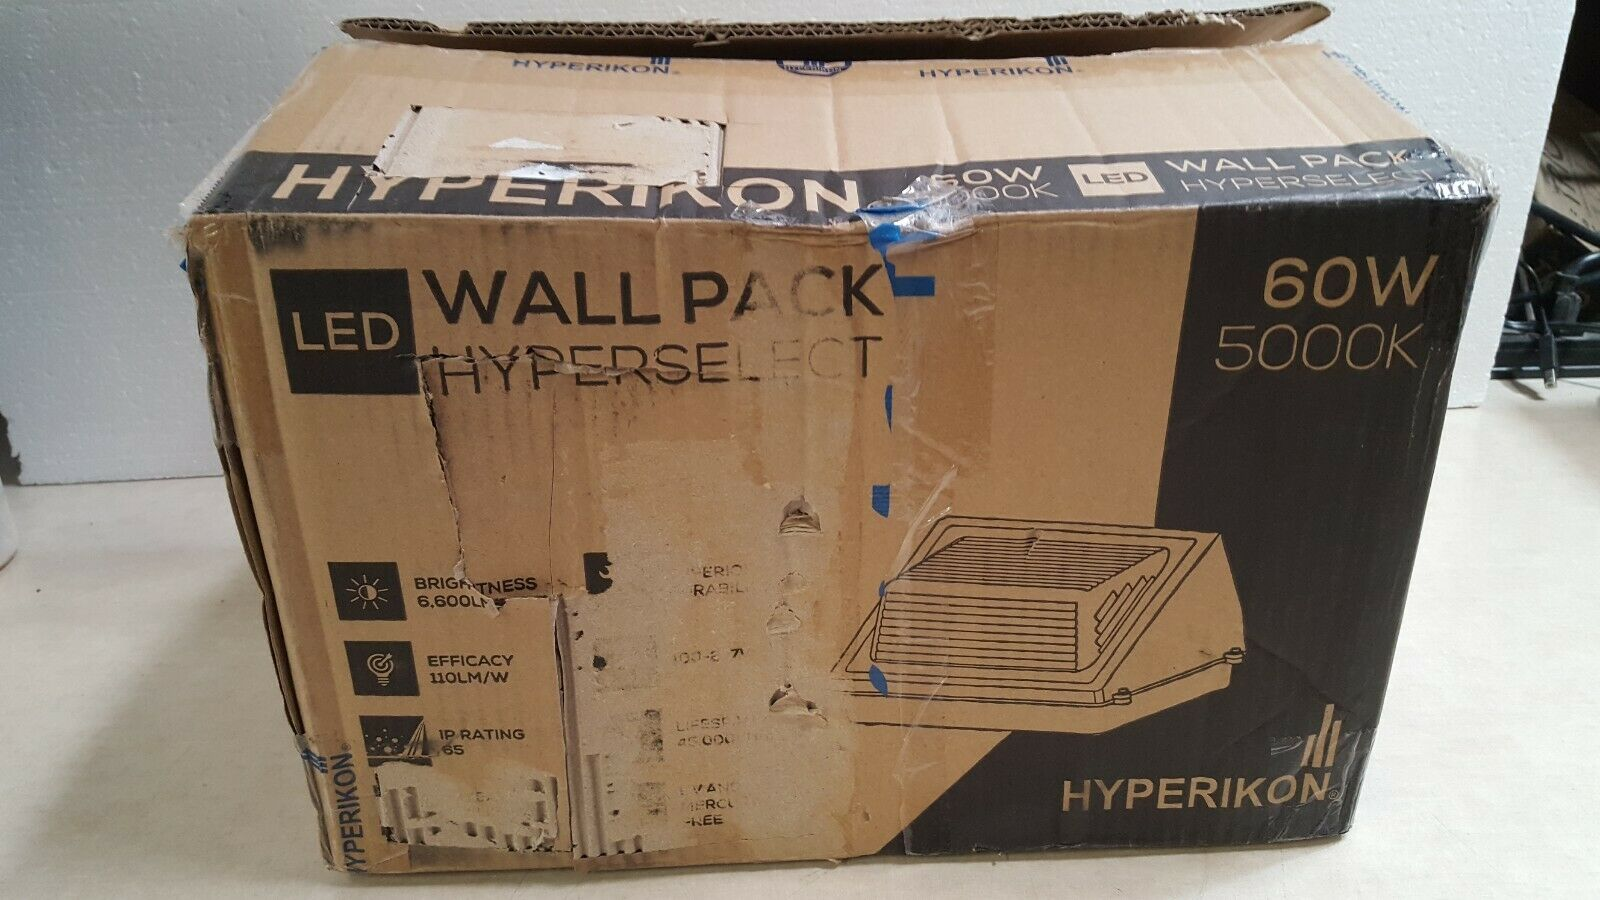 Hyperikon Hyperselect LED Wall Pack 60w 5000k